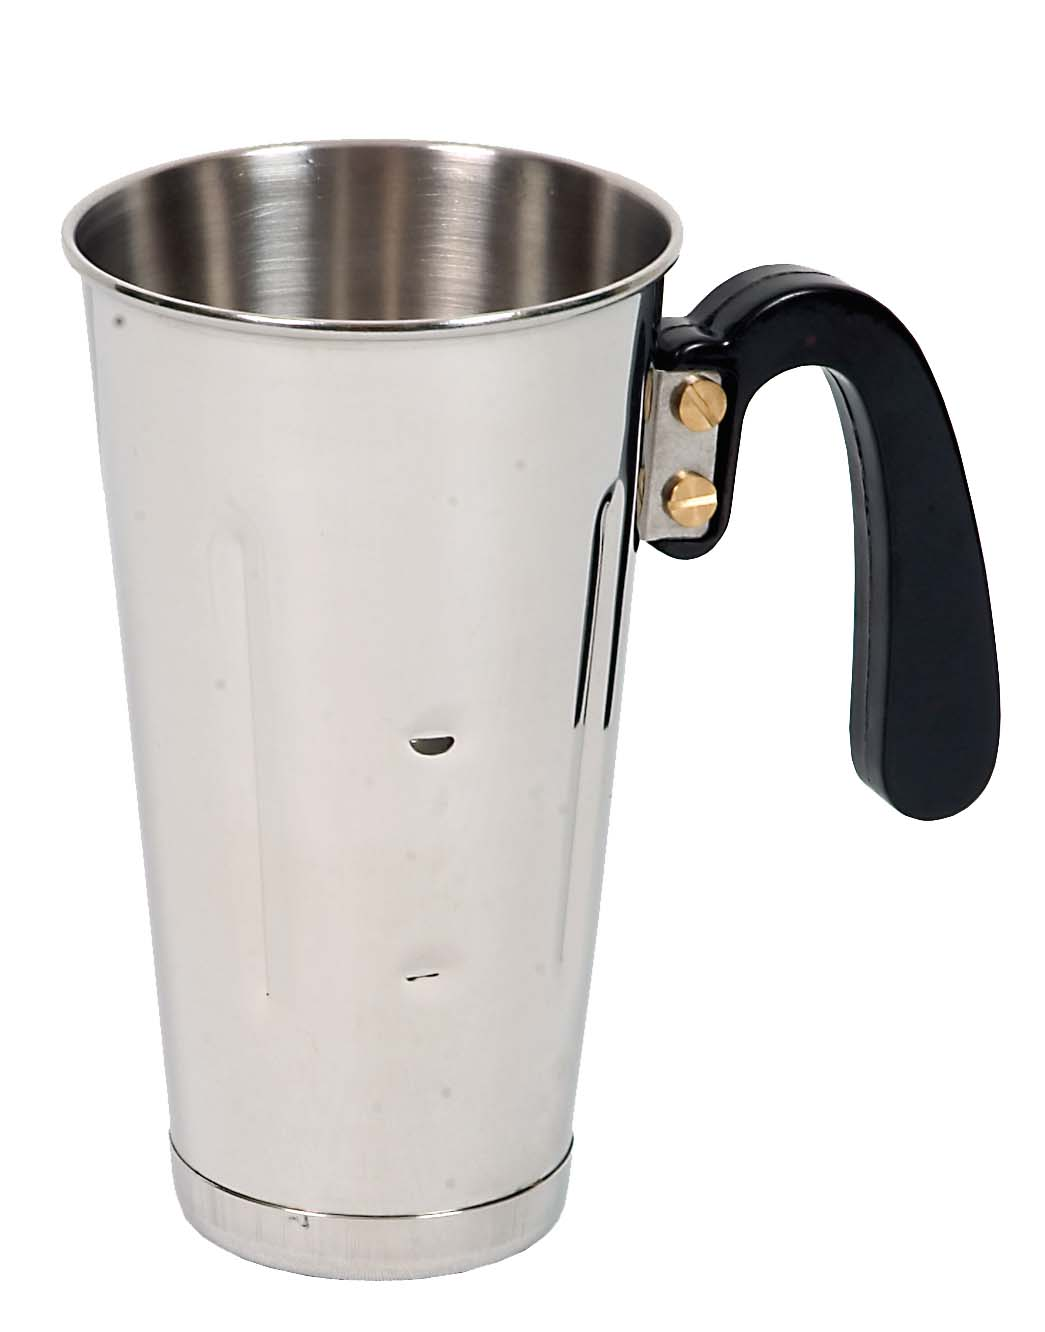 MILK SHAKE CUP S/STEEL WITH HANDLE - 880ml